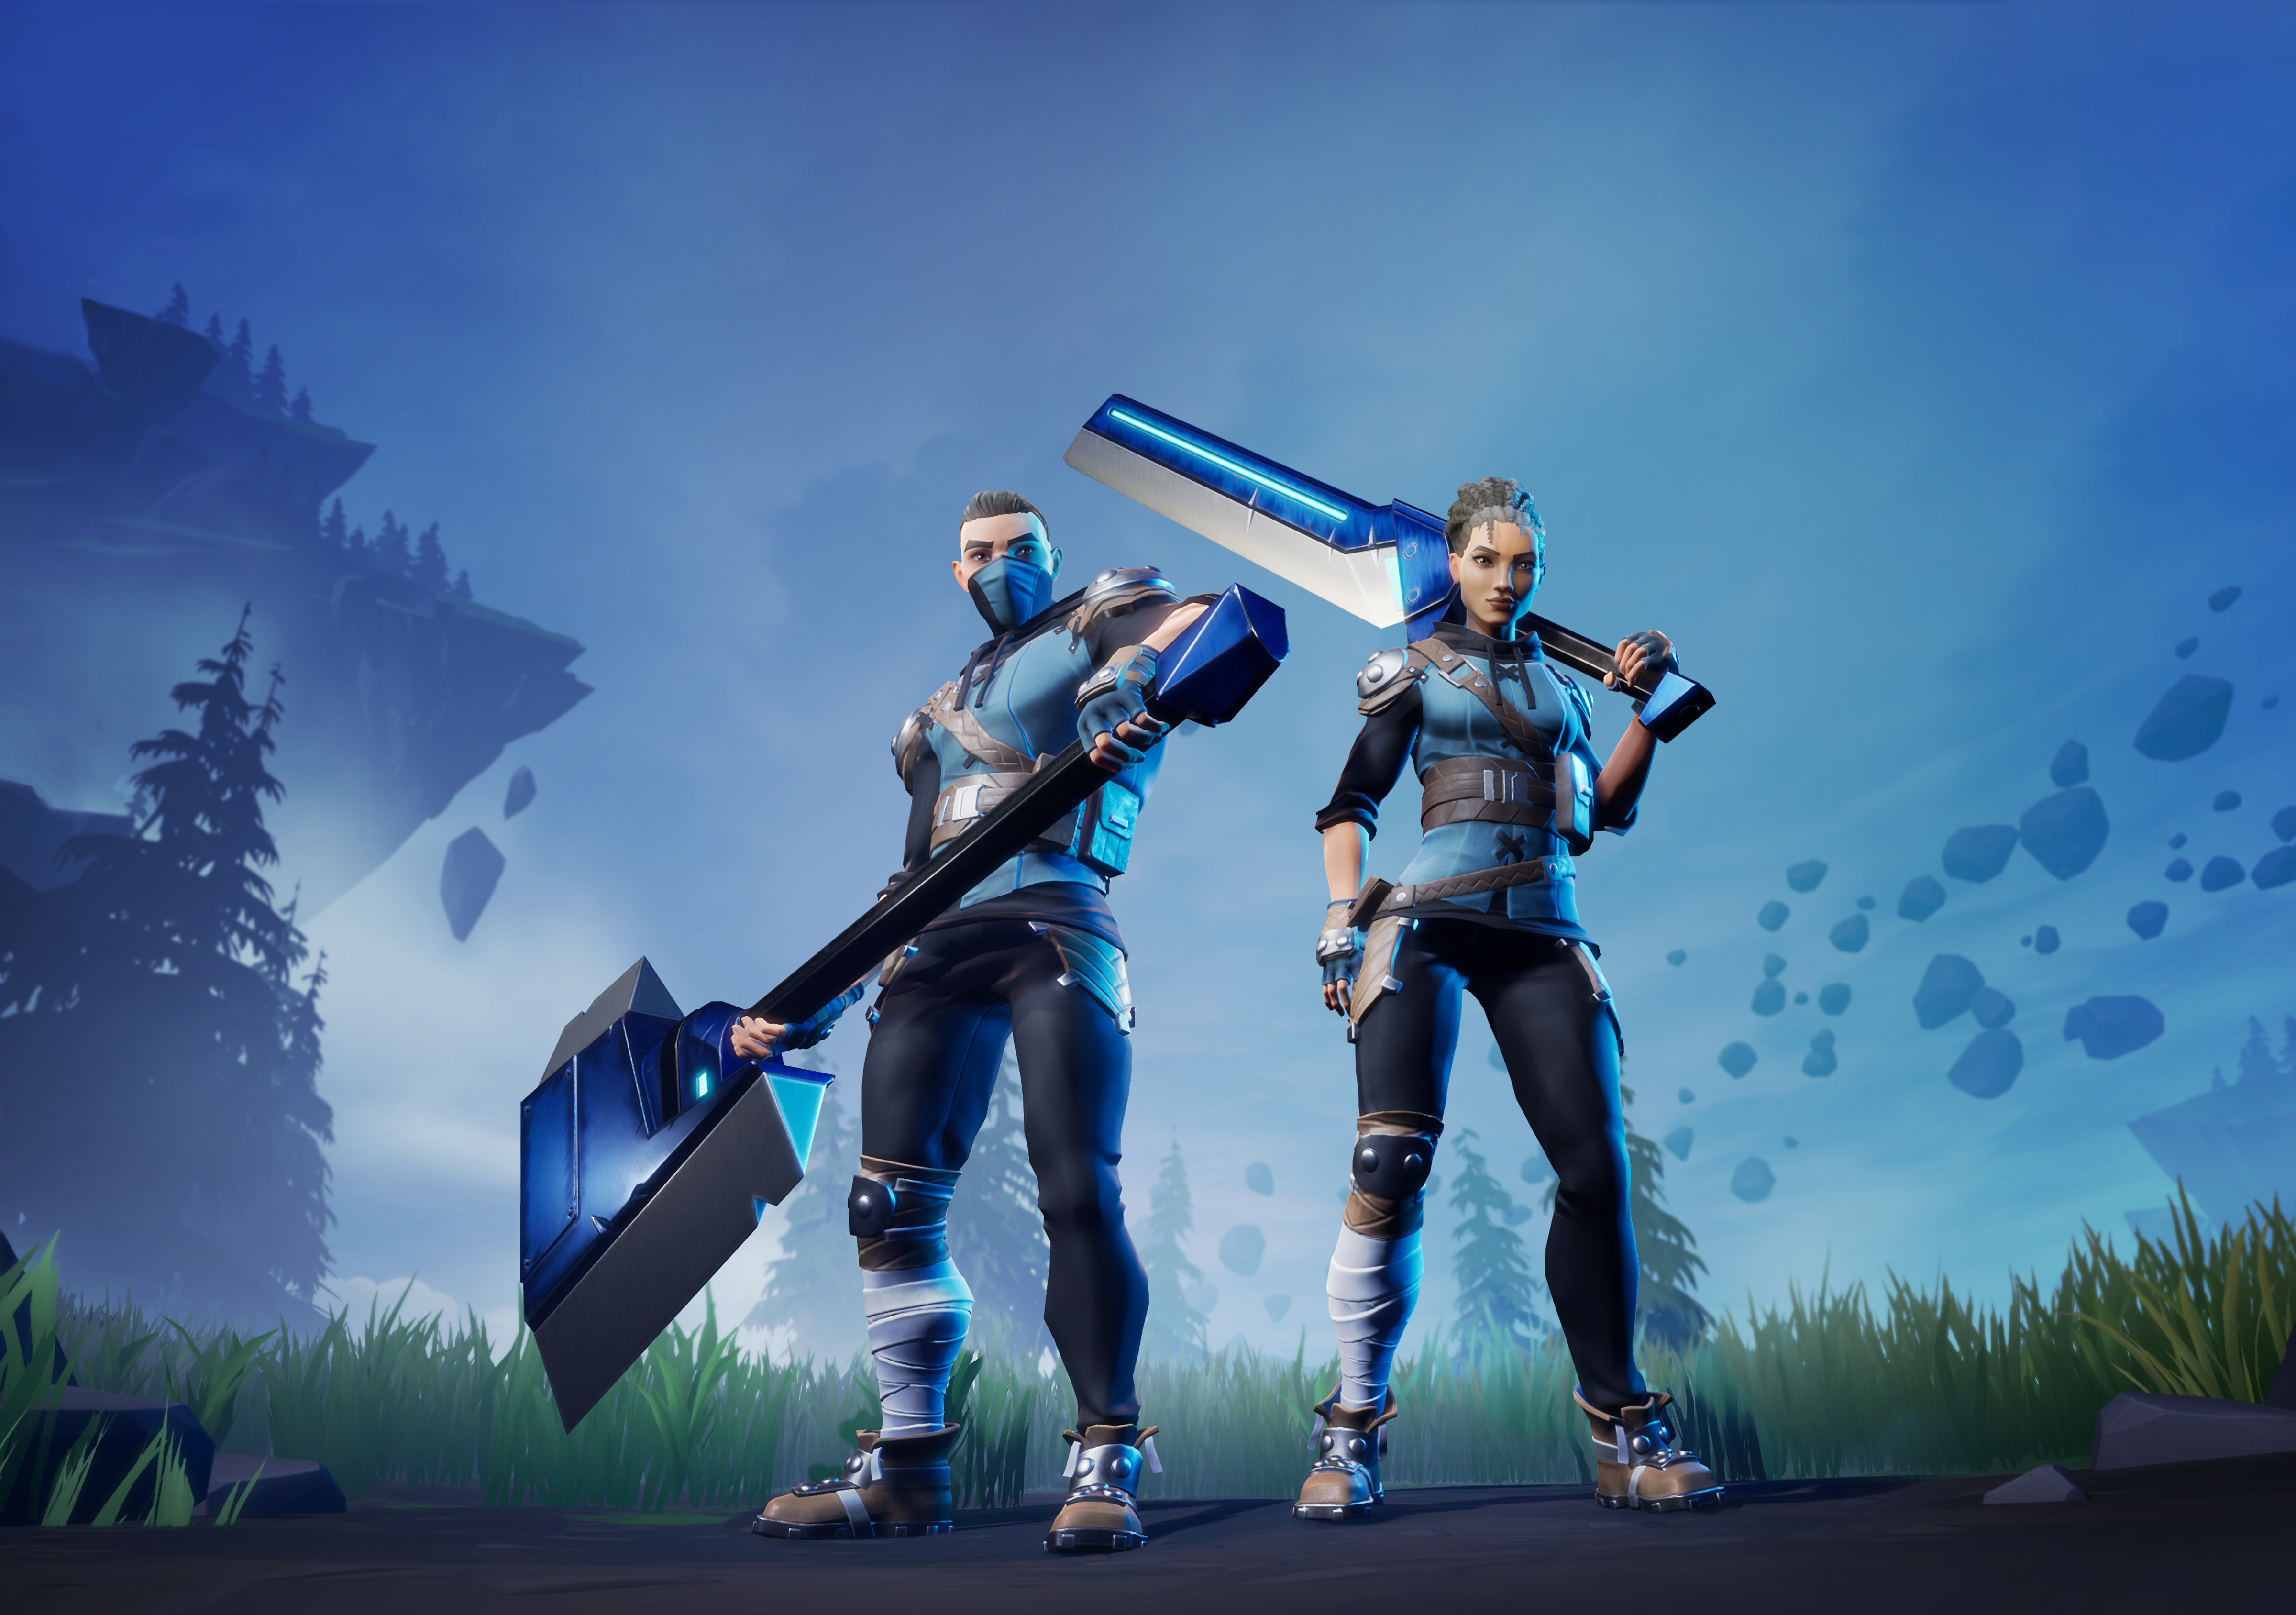 Fortnite Dauntless Android 1280x720 Dauntless Game 720p Wallpaper Hd Games 4k Wallpapers Images Photos And Background Wallpapers Den